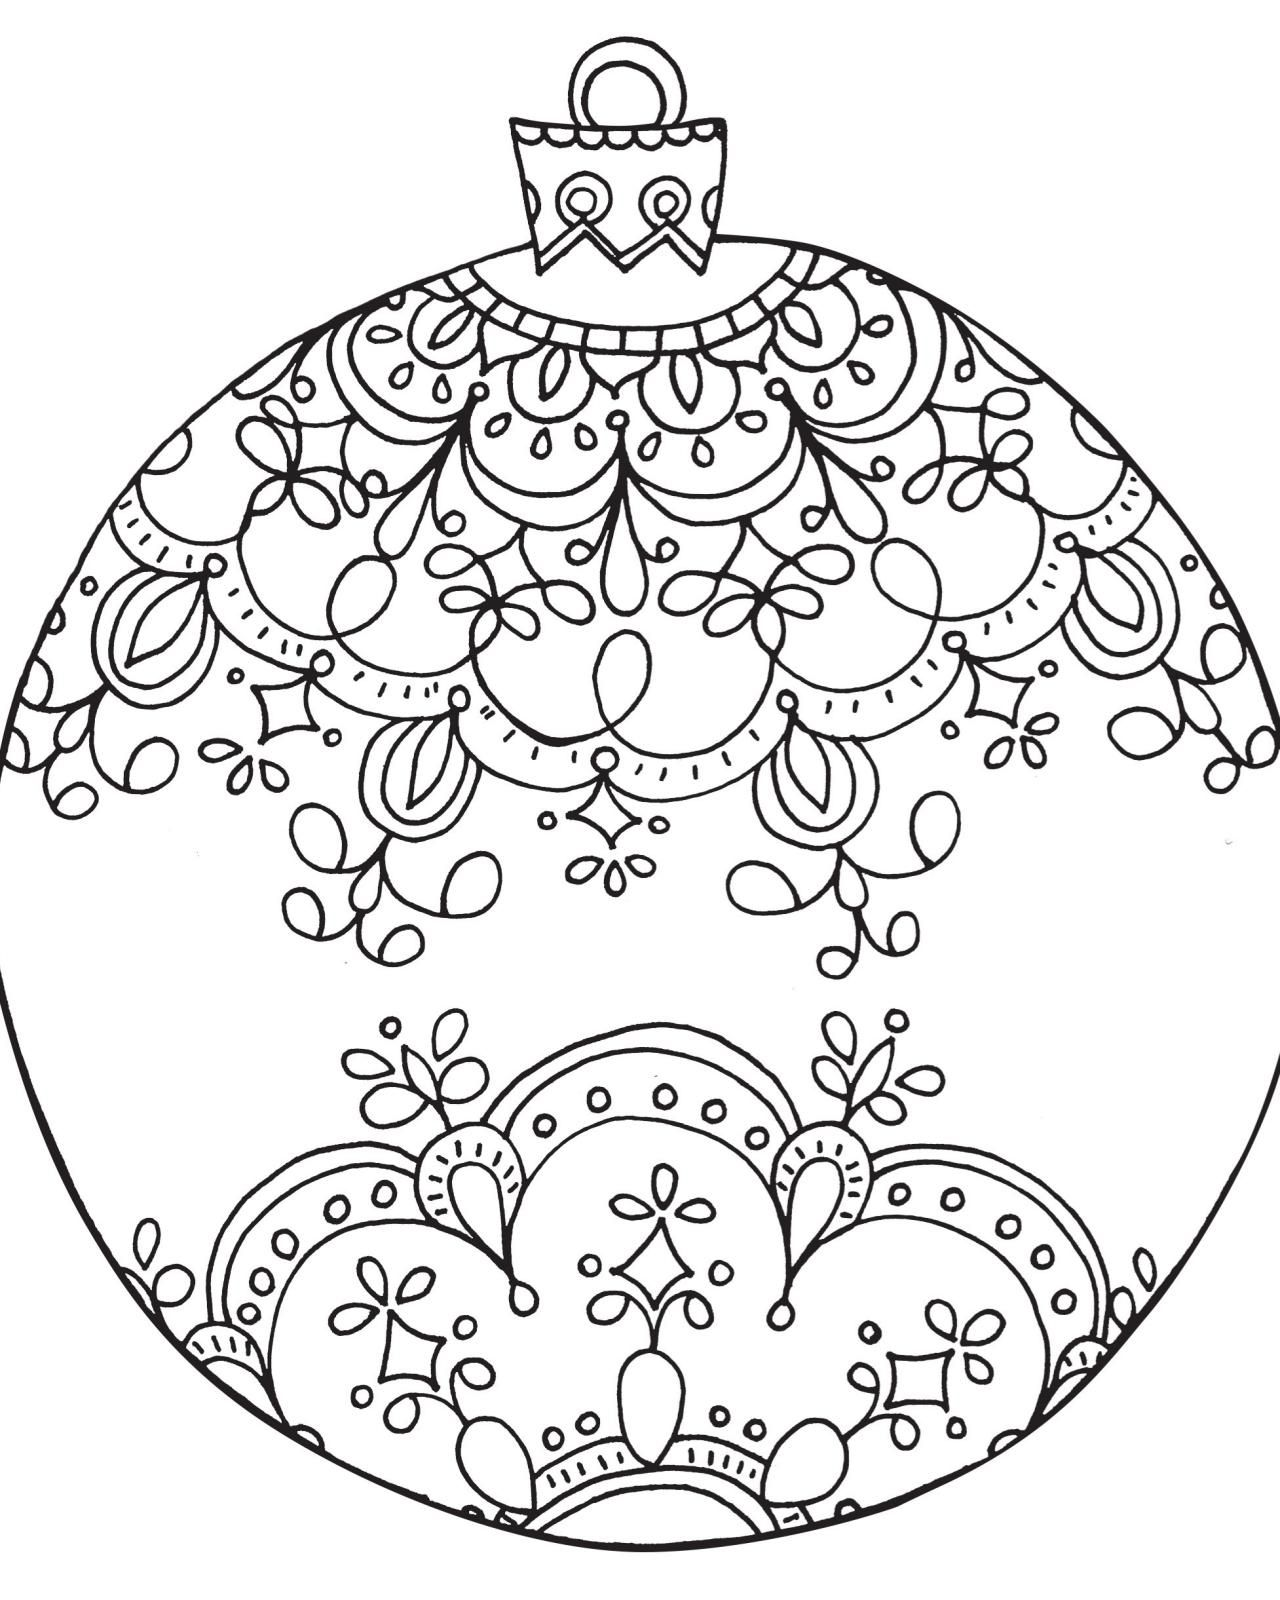 Coloring pages xmas decorations - Free Printable Coloring Pages For Adults